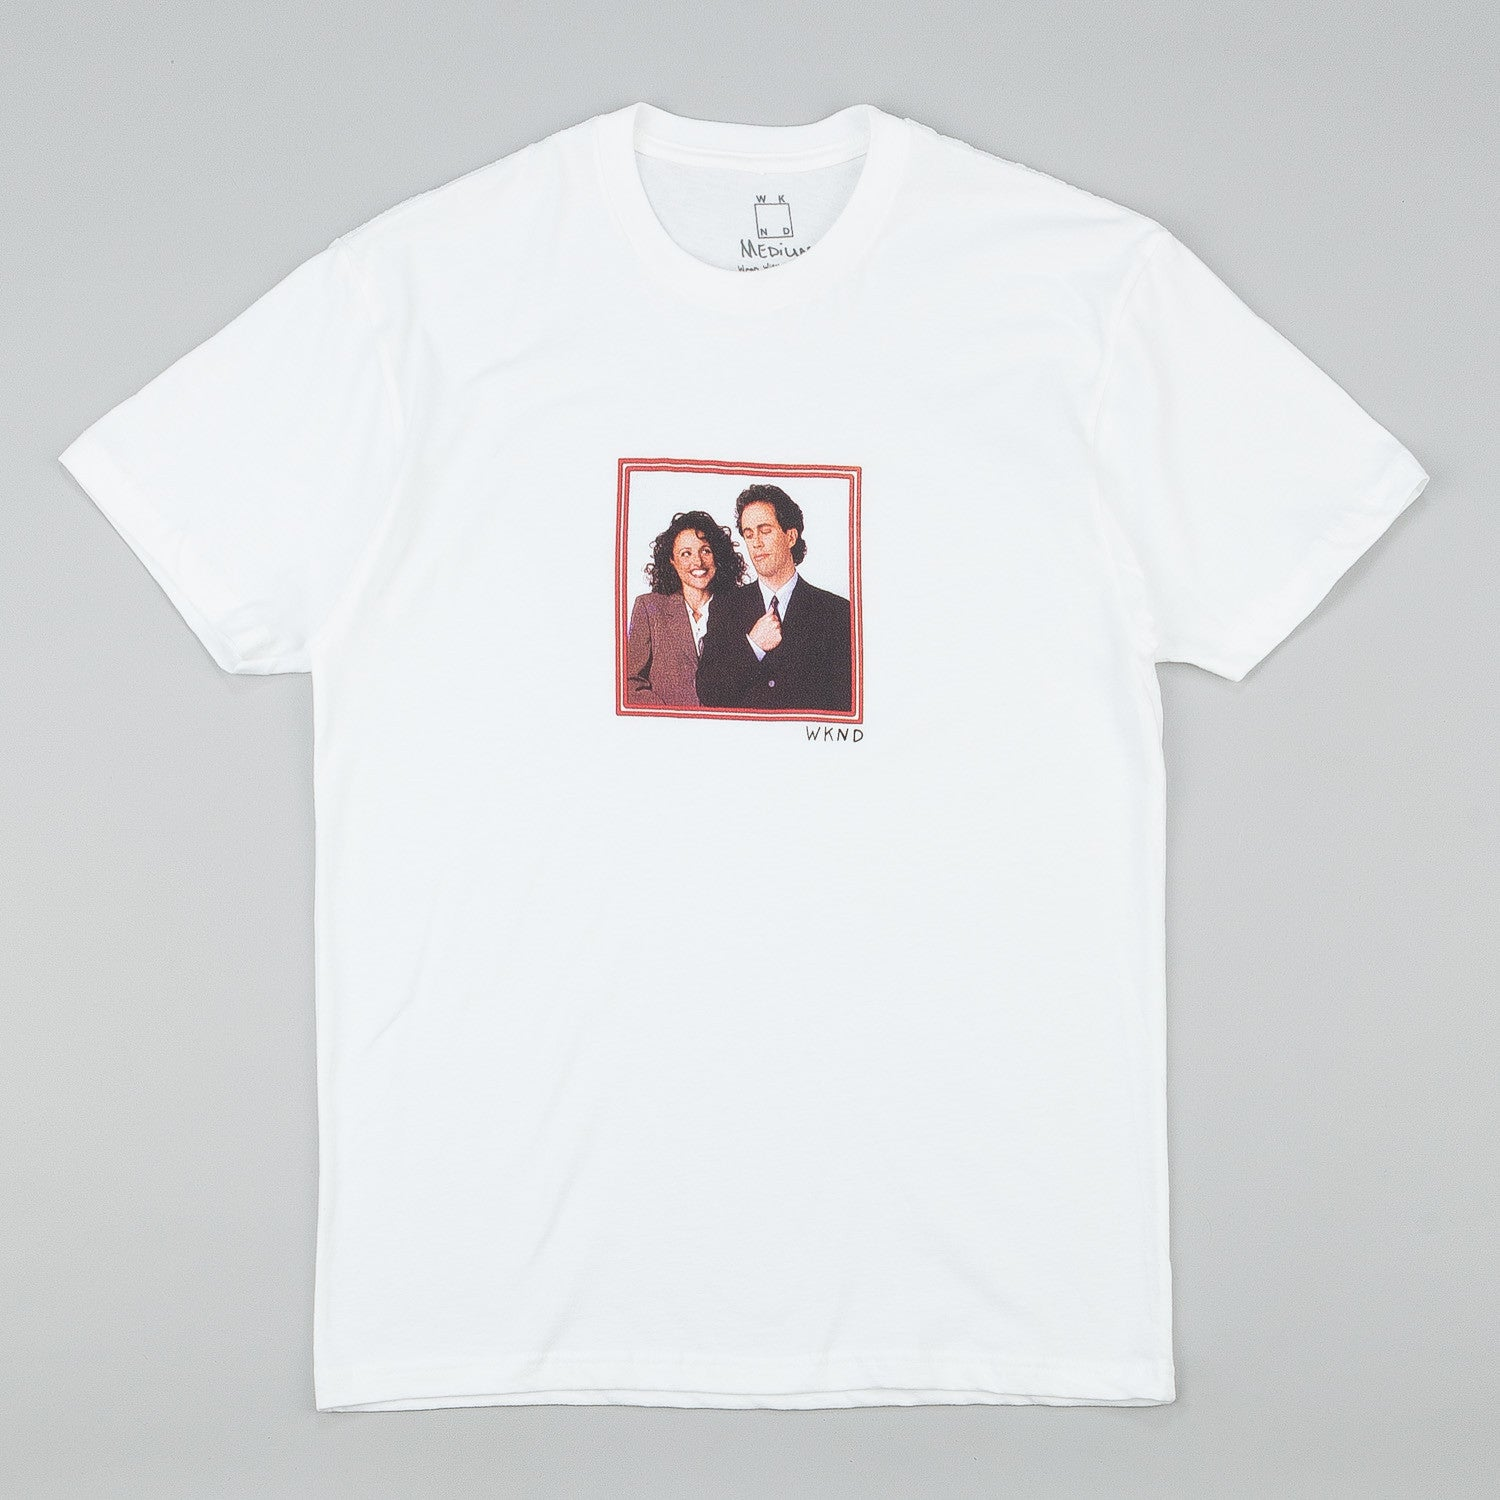 WKND Jerry & Elaine T-Shirt